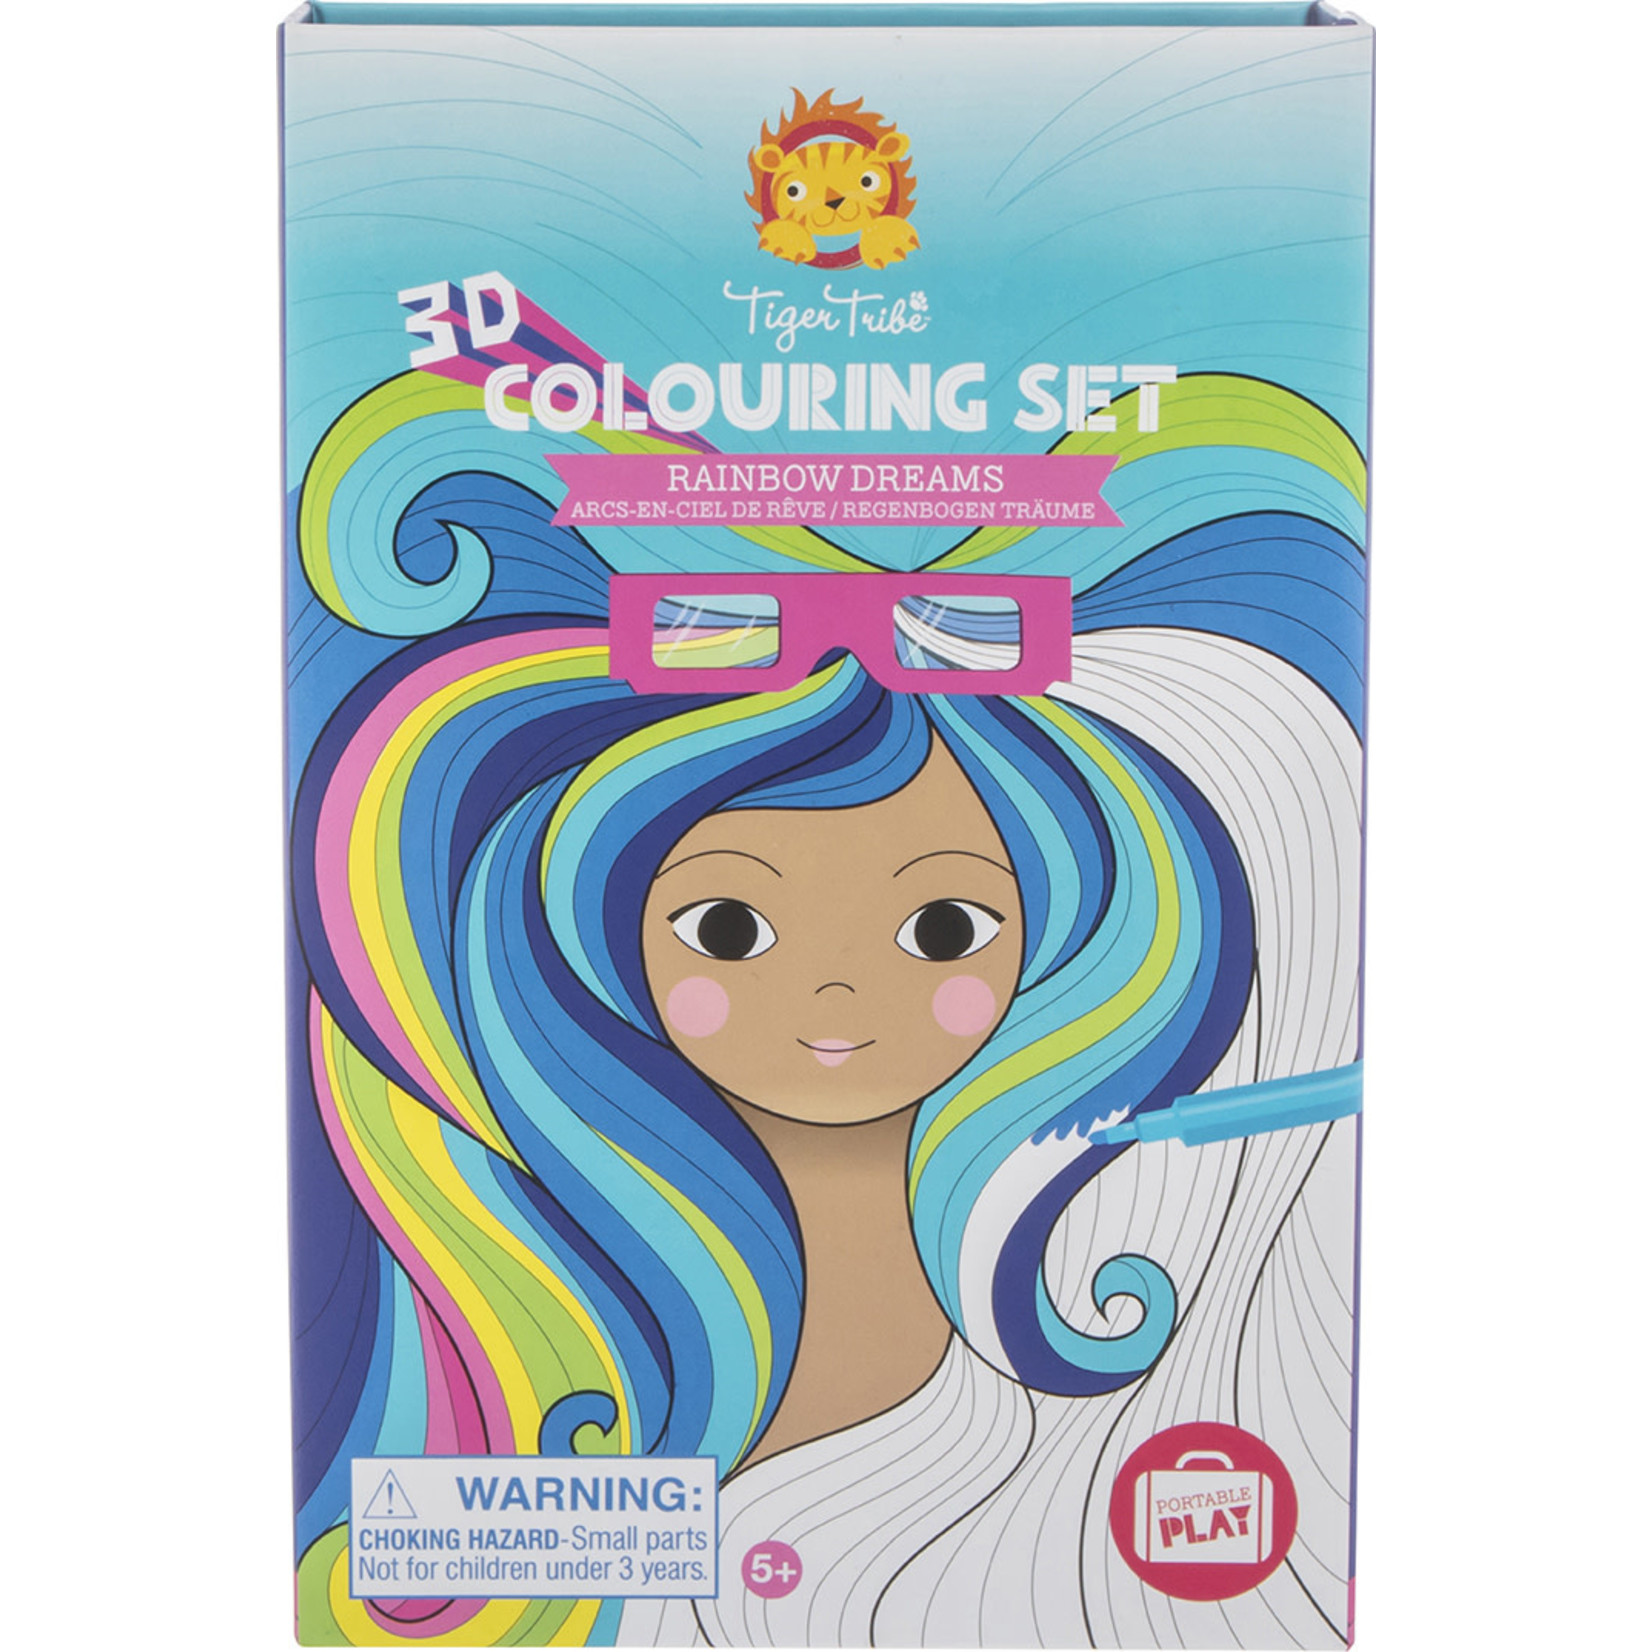 Tiger Tribe Rainbow Dreams 3D Coloring Set